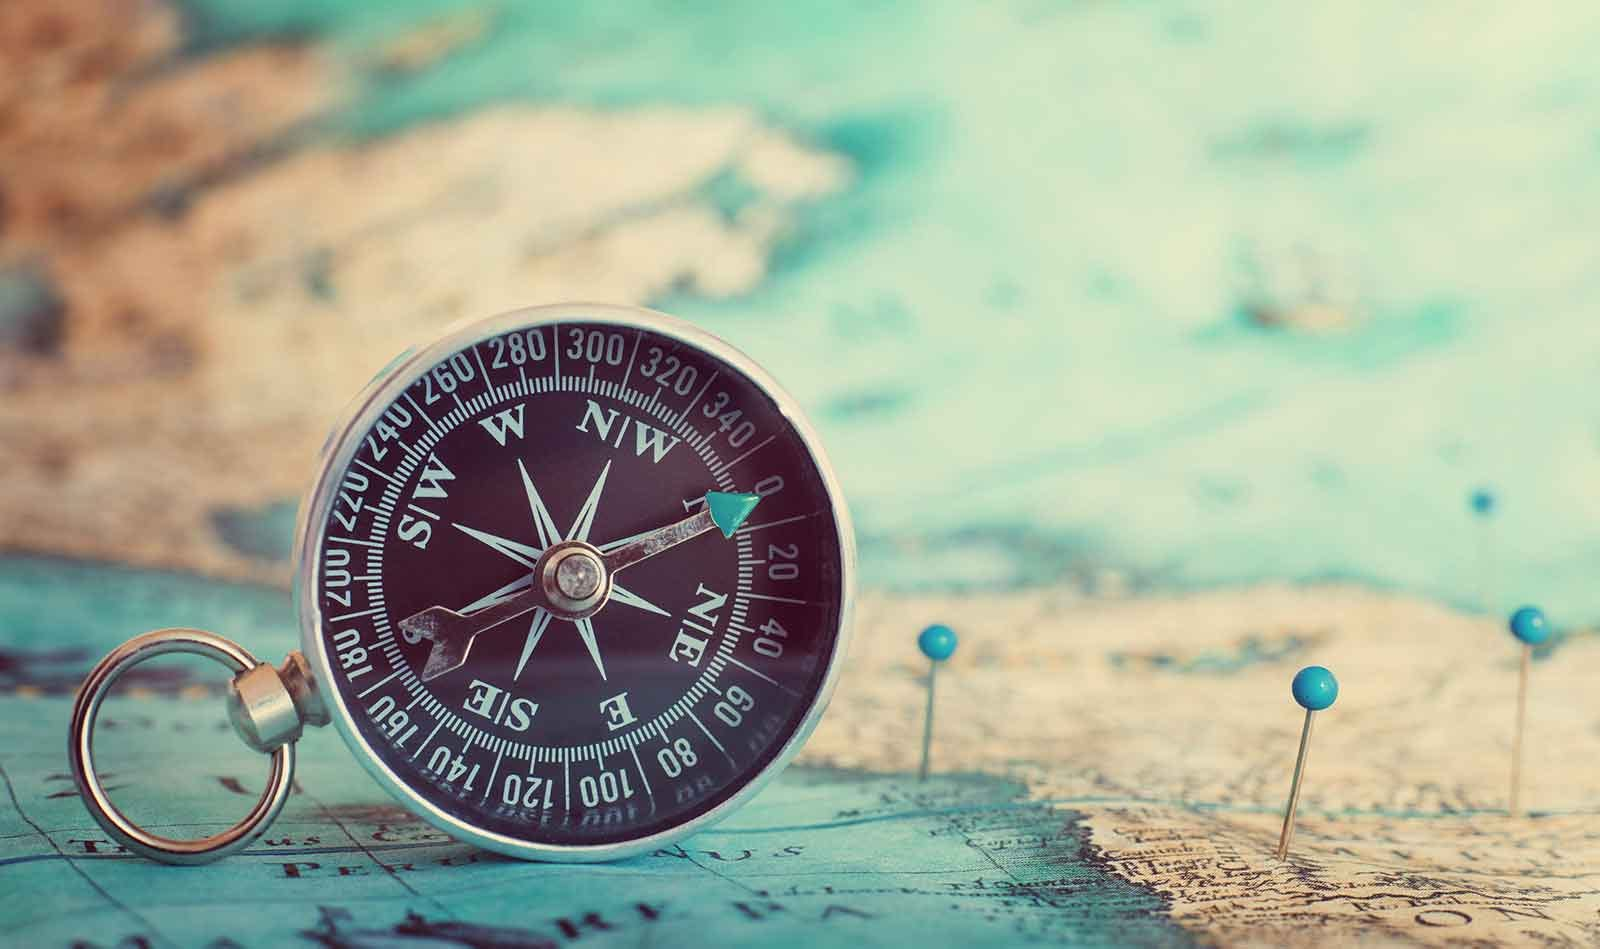 Compass resting on a map with destinations marked by pins